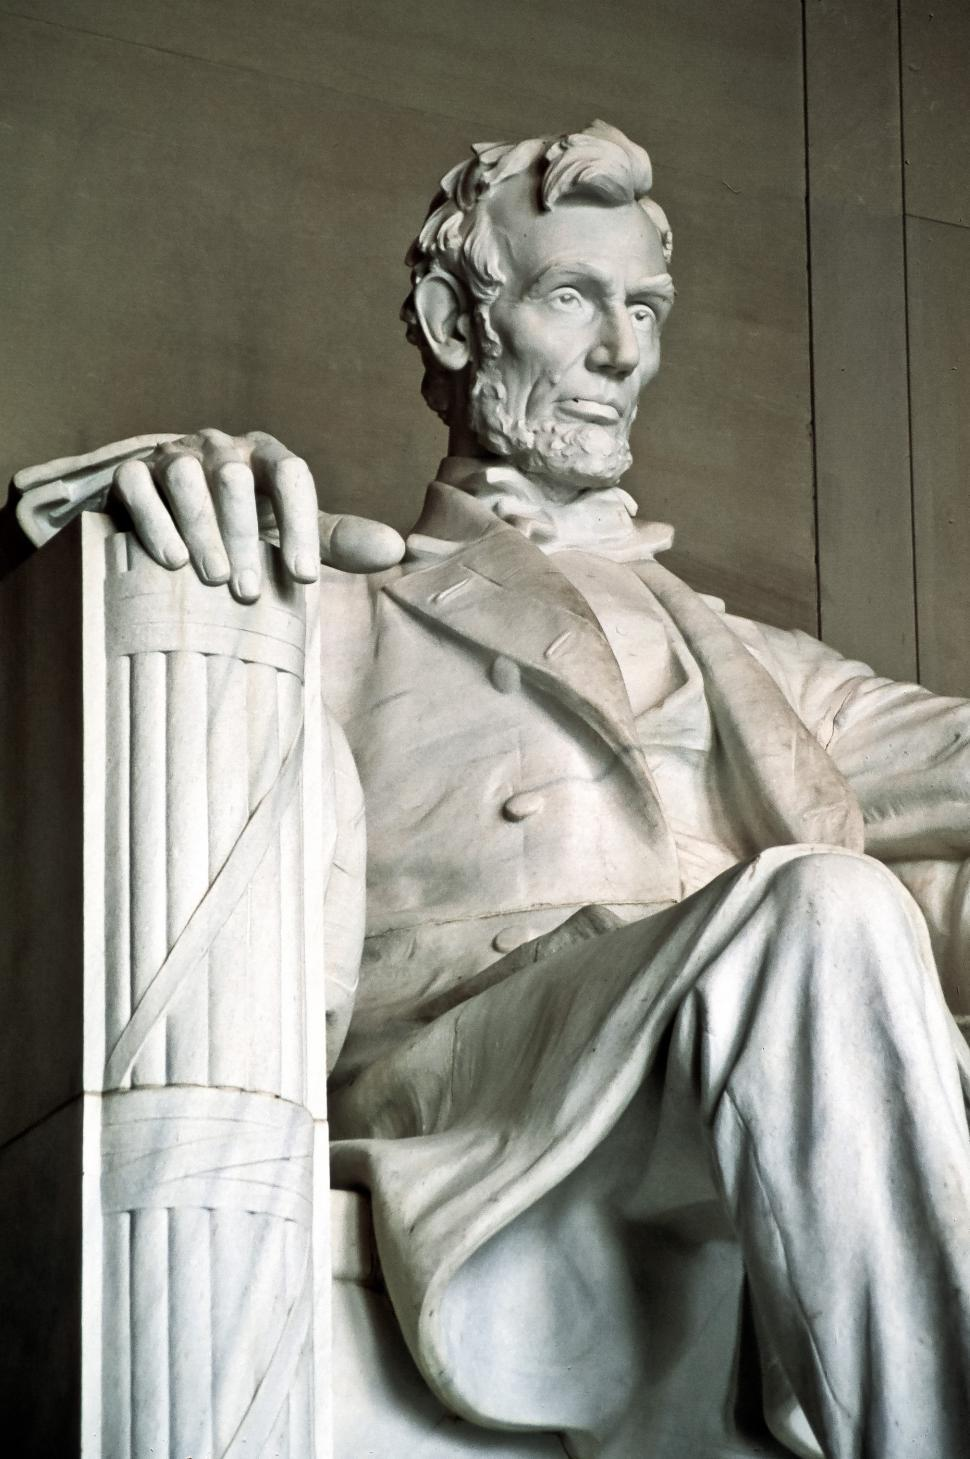 Download Free Stock Photo of Statue of Lincoln